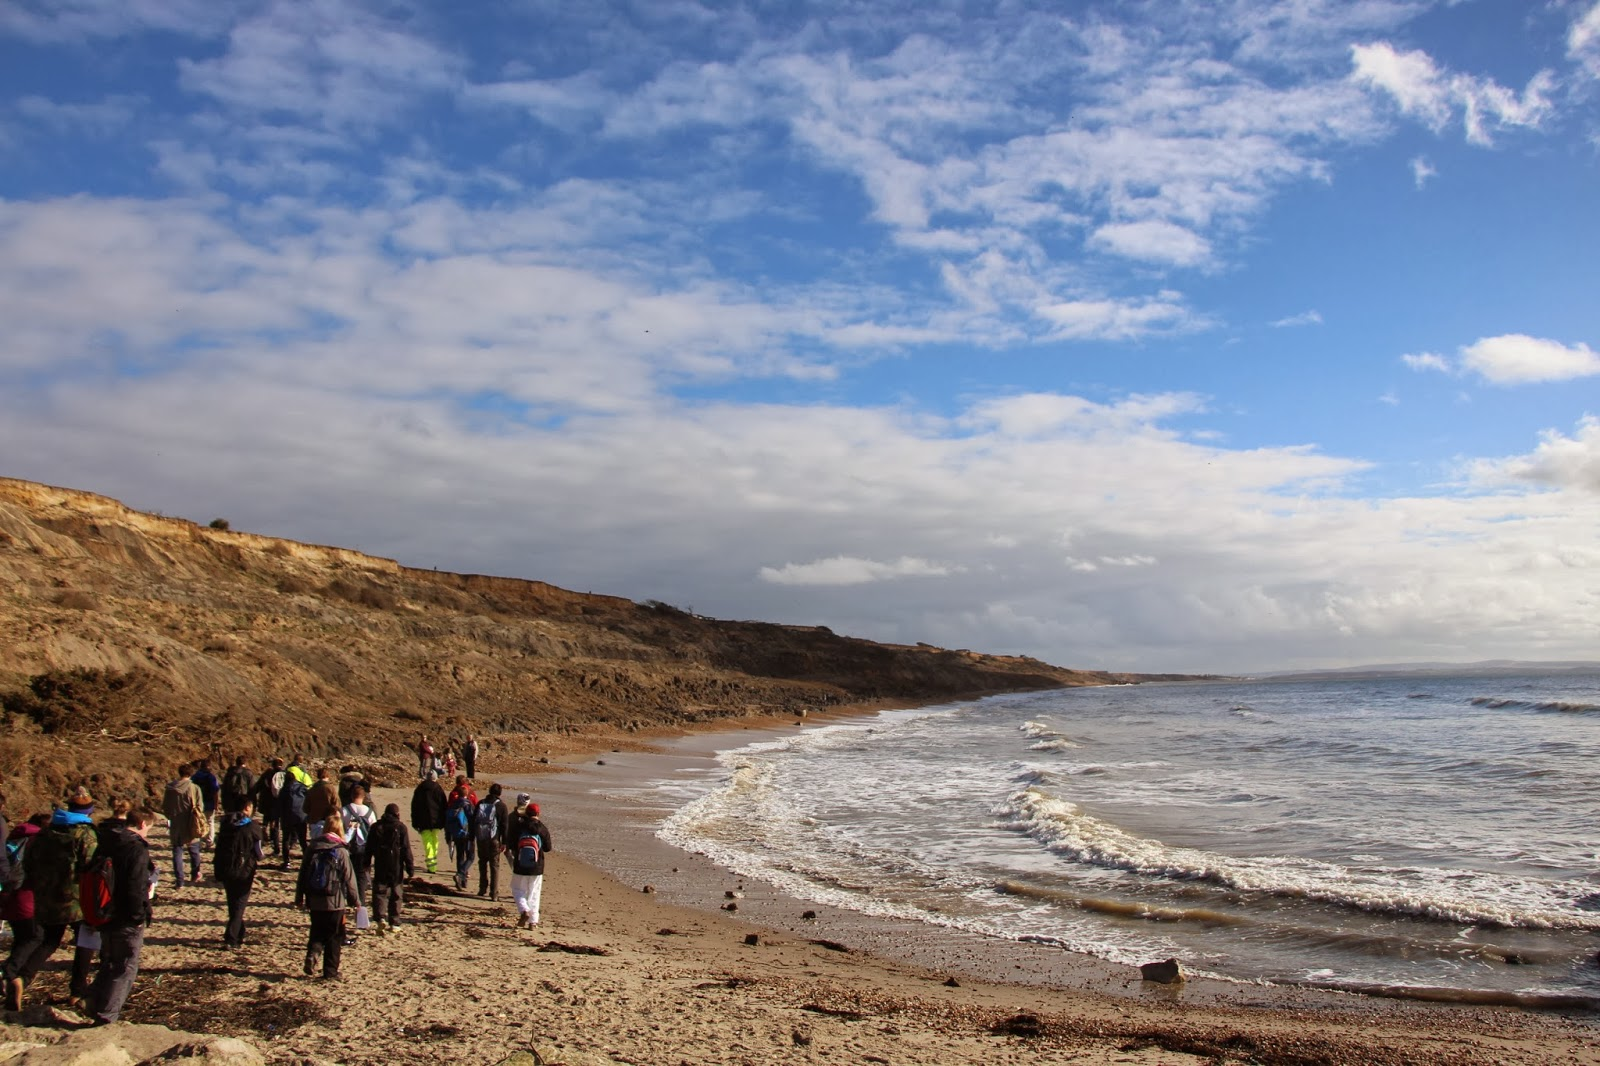 hengistbury head coursework Hengistbury head outdoor education centre: powerboat level 2 course - see 19 traveler reviews, 22 candid photos, and great deals for bournemouth, uk, at tripadvisor.